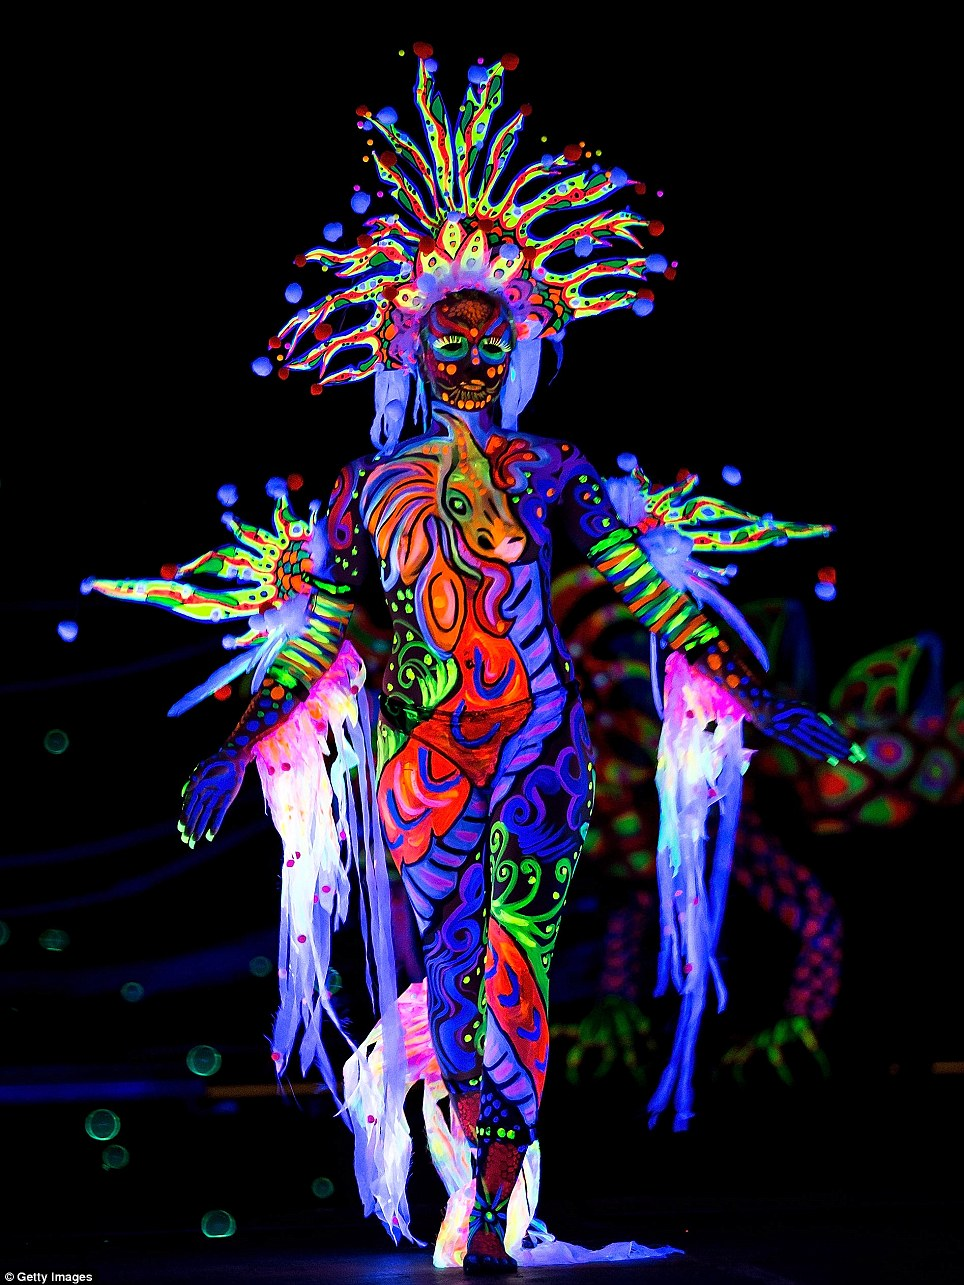 11. Our bodies glow in the dark, but our eyes are not able to see that